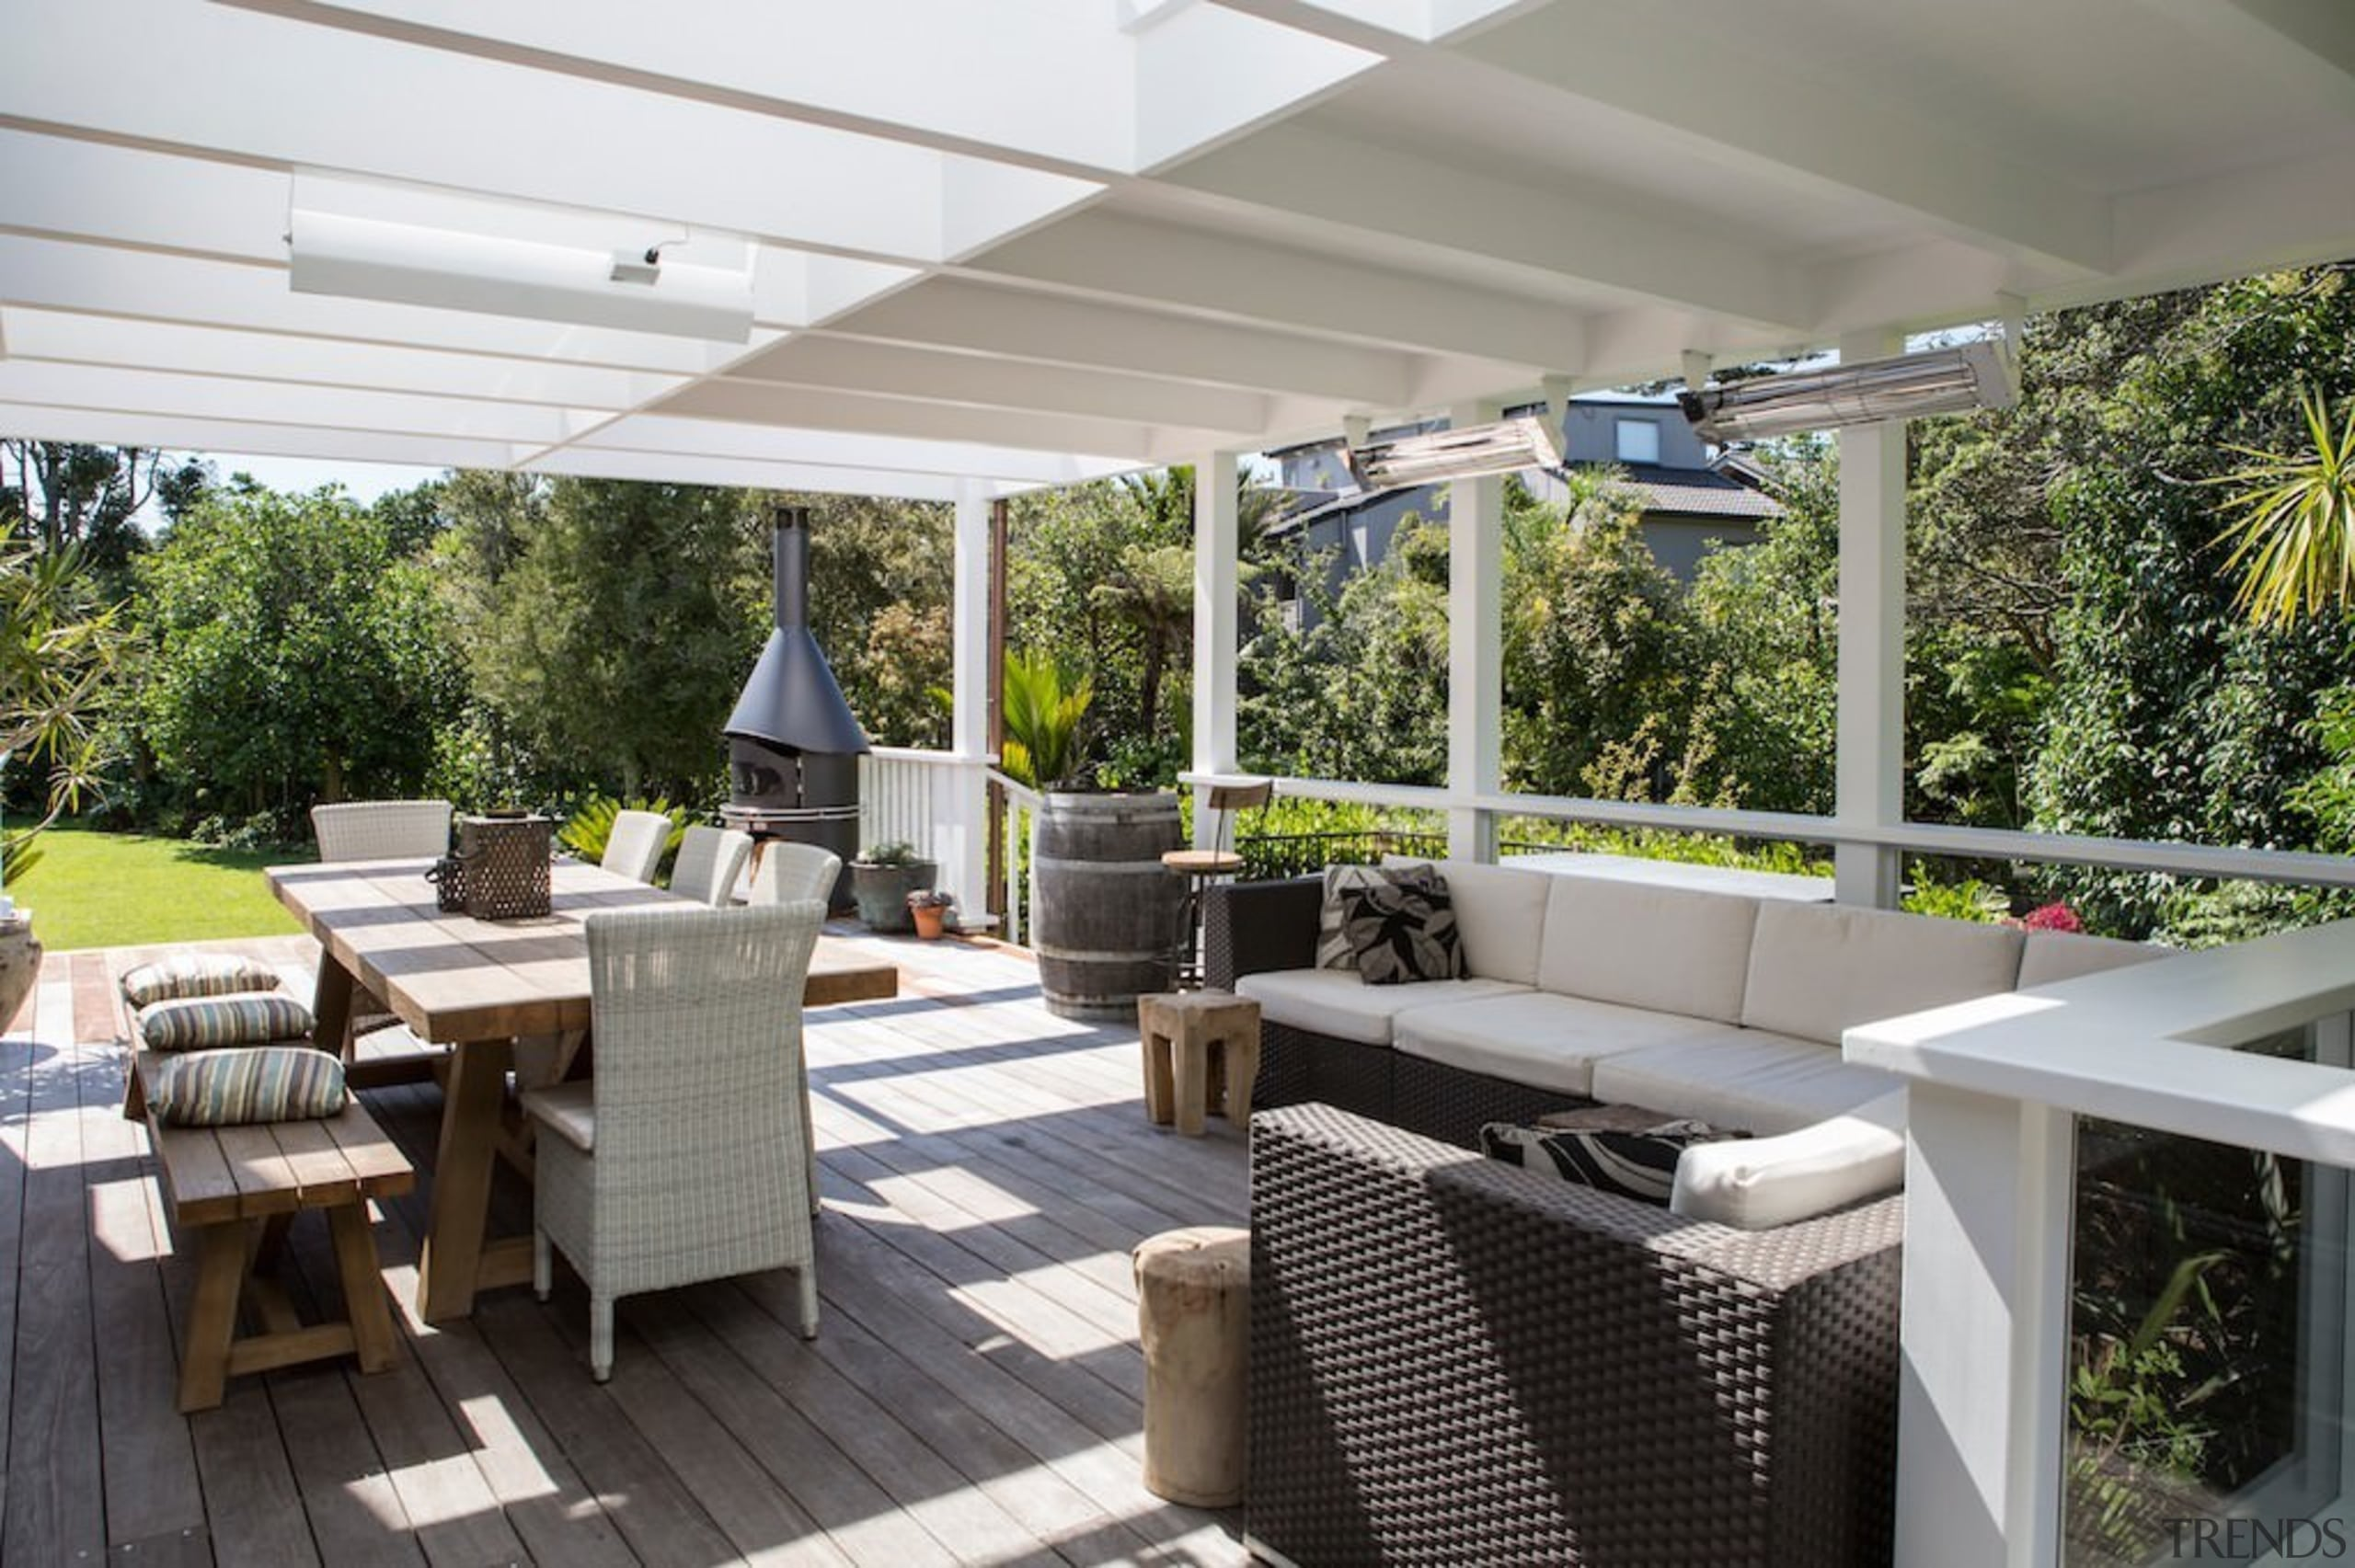 This outdoor space gives a feeling of living interior design, outdoor structure, patio, property, real estate, roof, gray